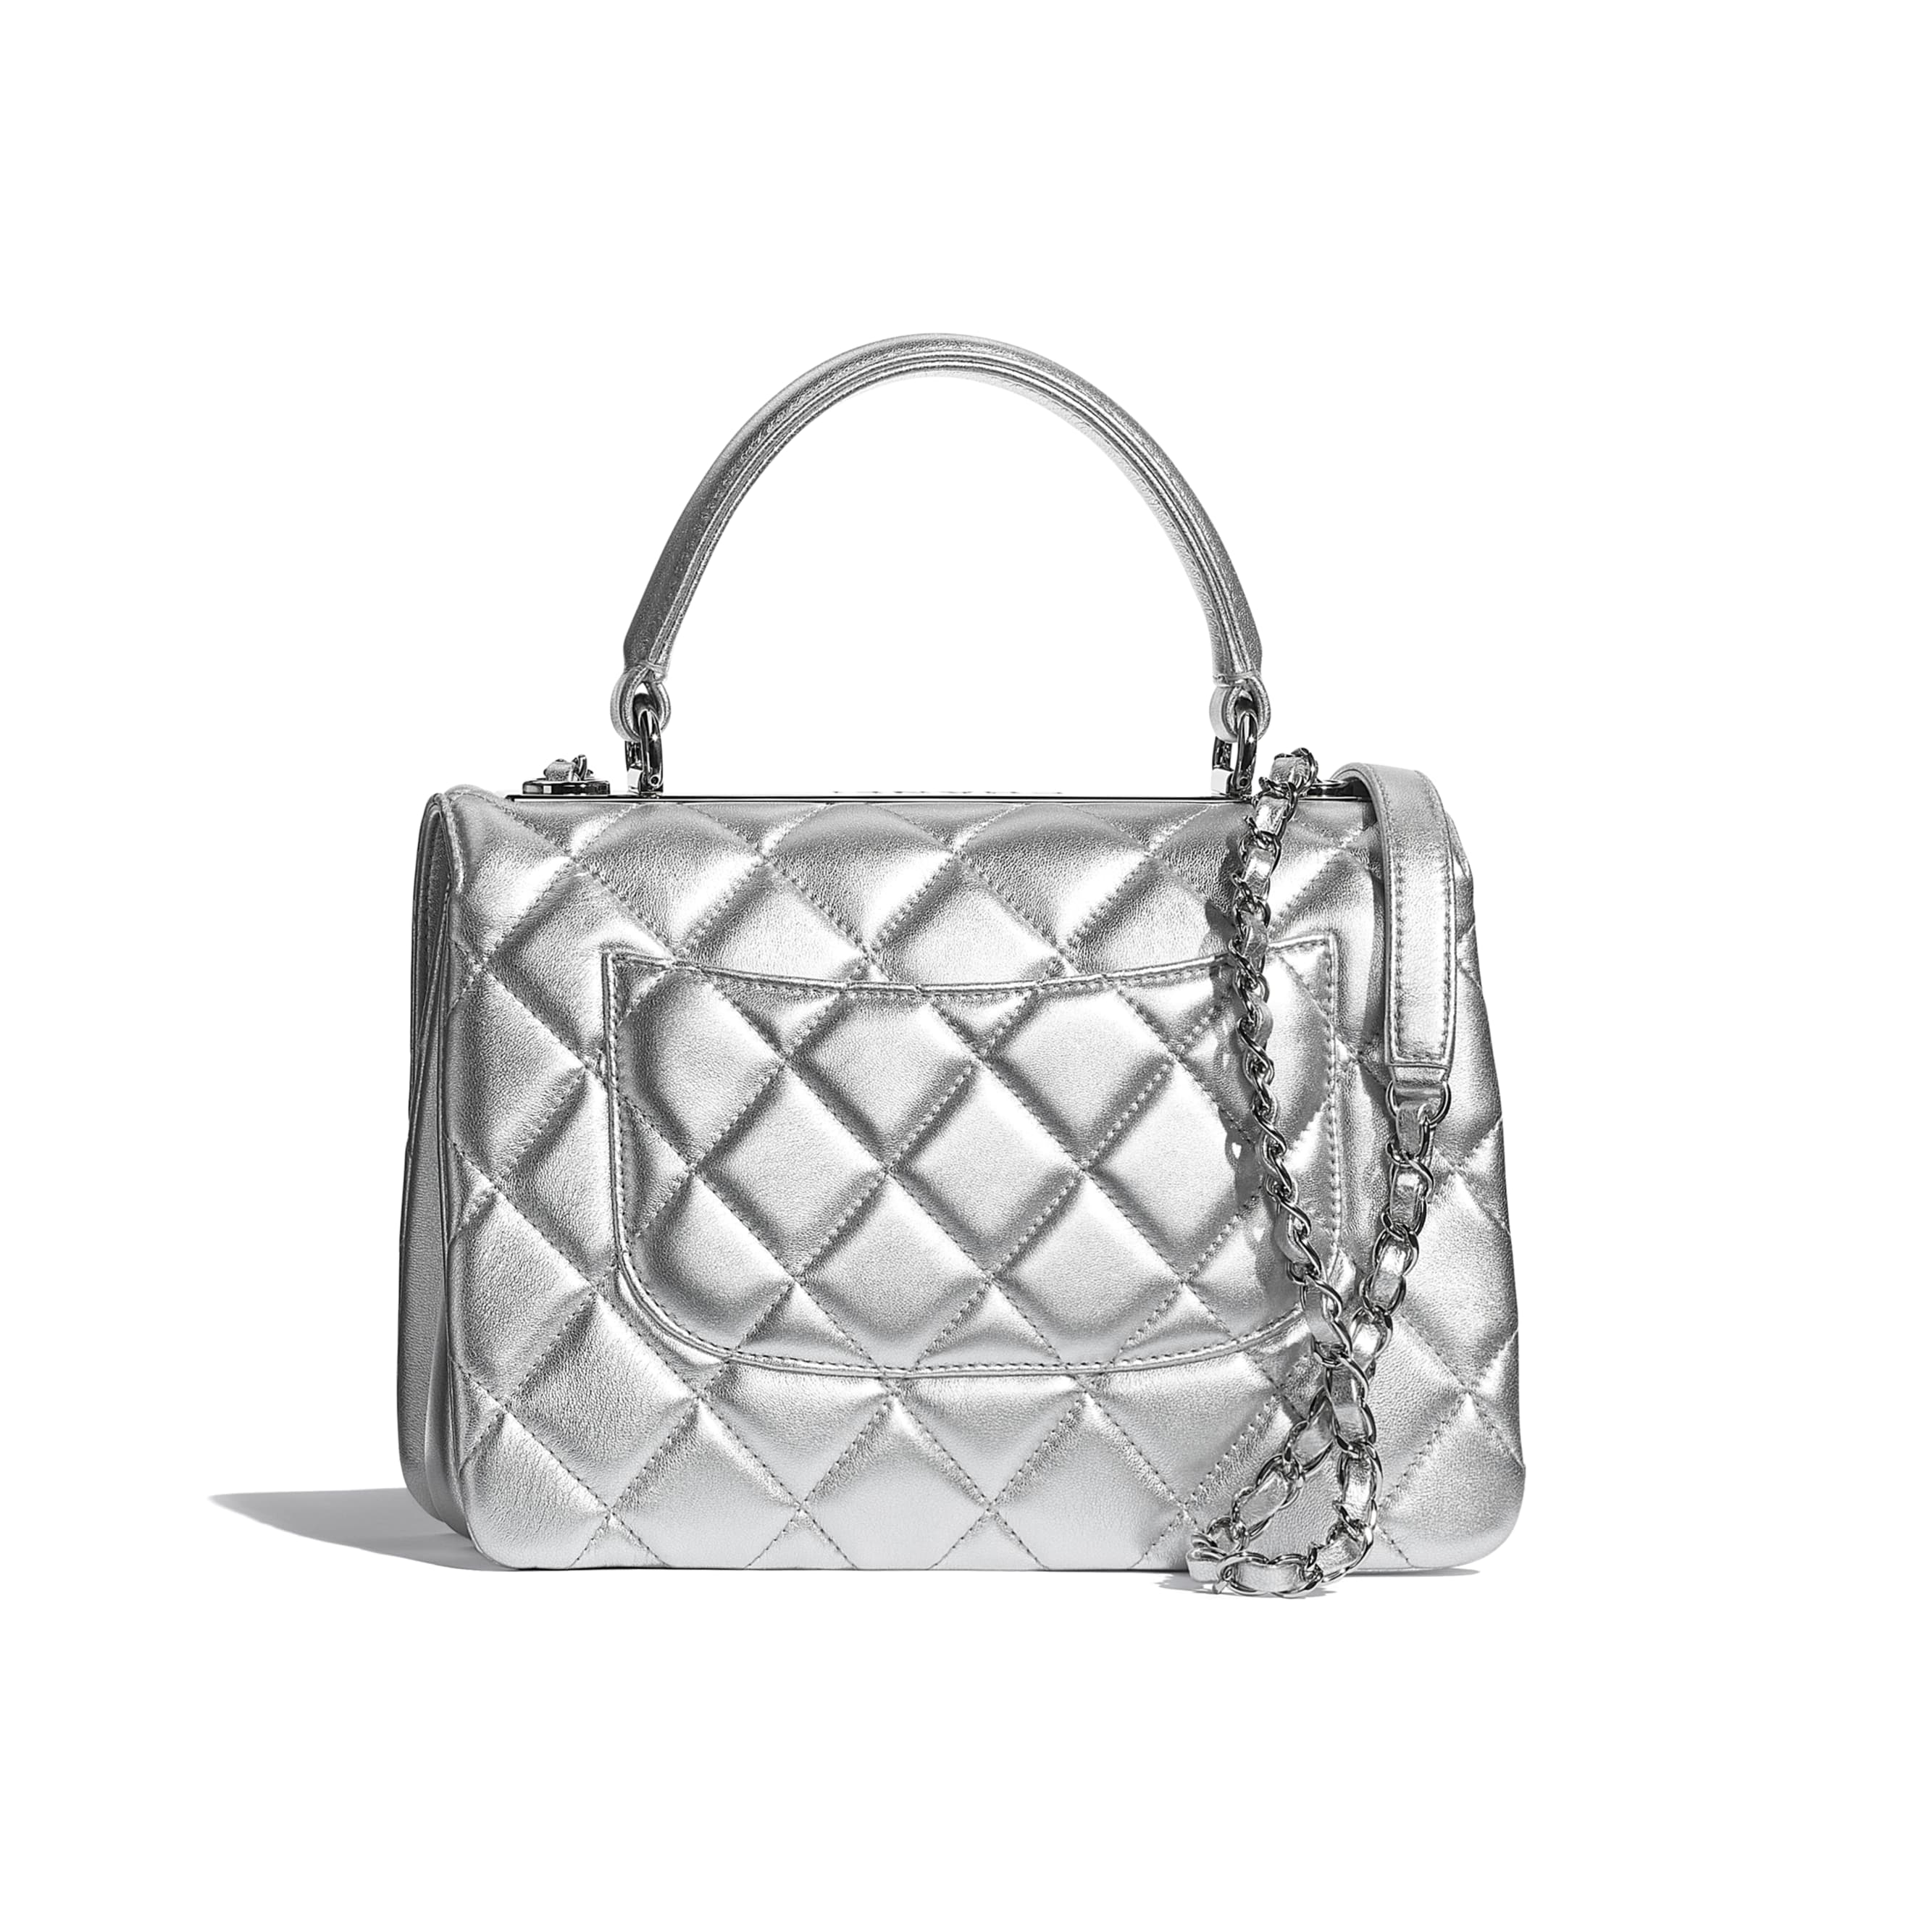 Flap Bag With Top Handle - Silver - Metallic Lambskin & Silver Metal - CHANEL - Alternative view - see standard sized version